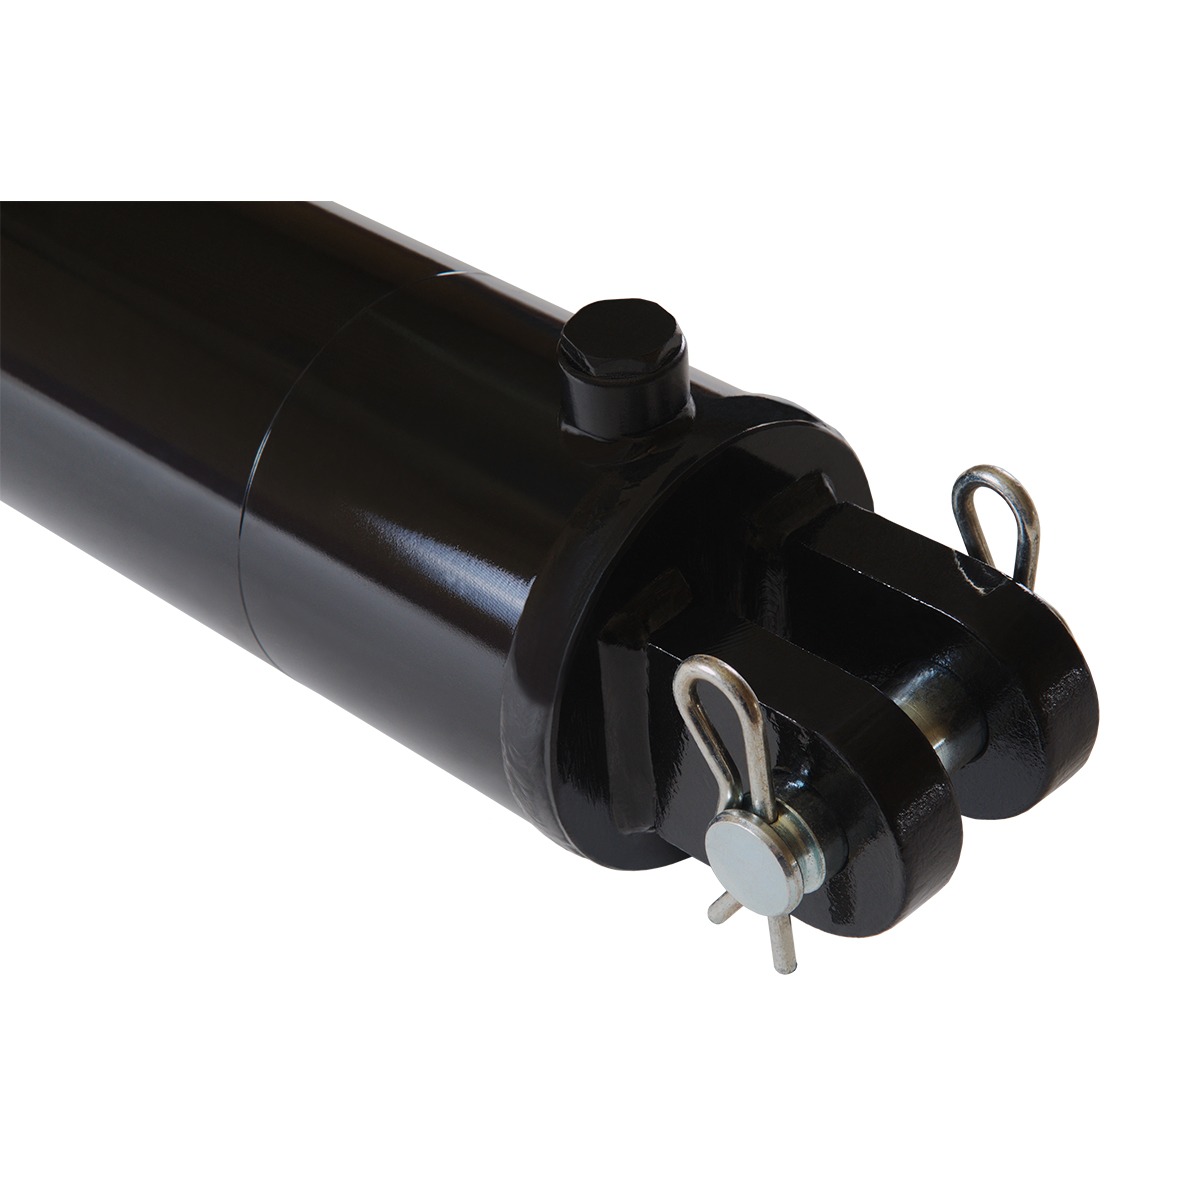 4 bore x 4 stroke hydraulic cylinder, welded clevis double acting cylinder | Magister Hydraulics